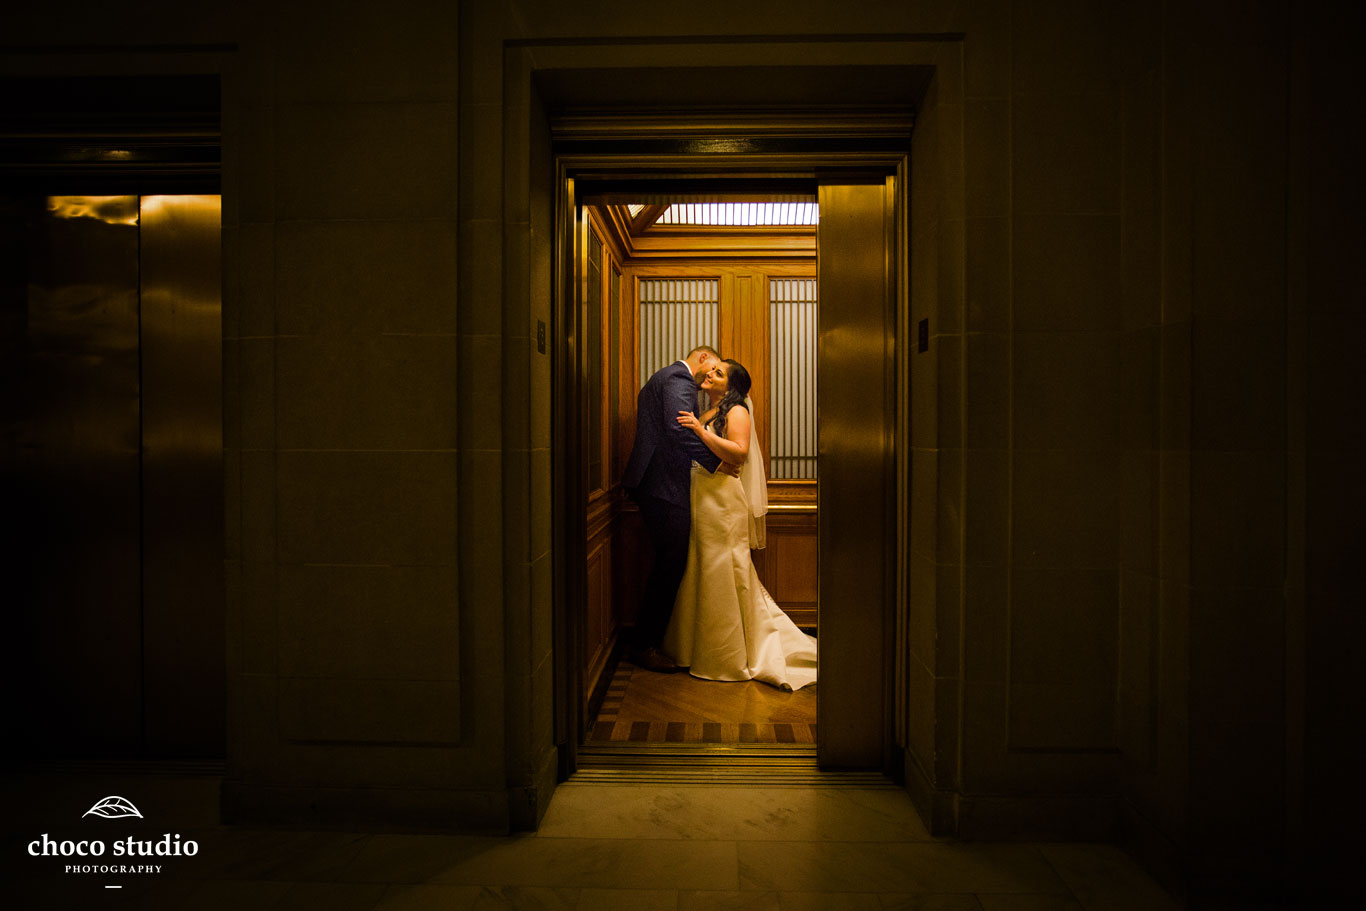 Intimate wedding portrait in San Francisco City Hall elevator